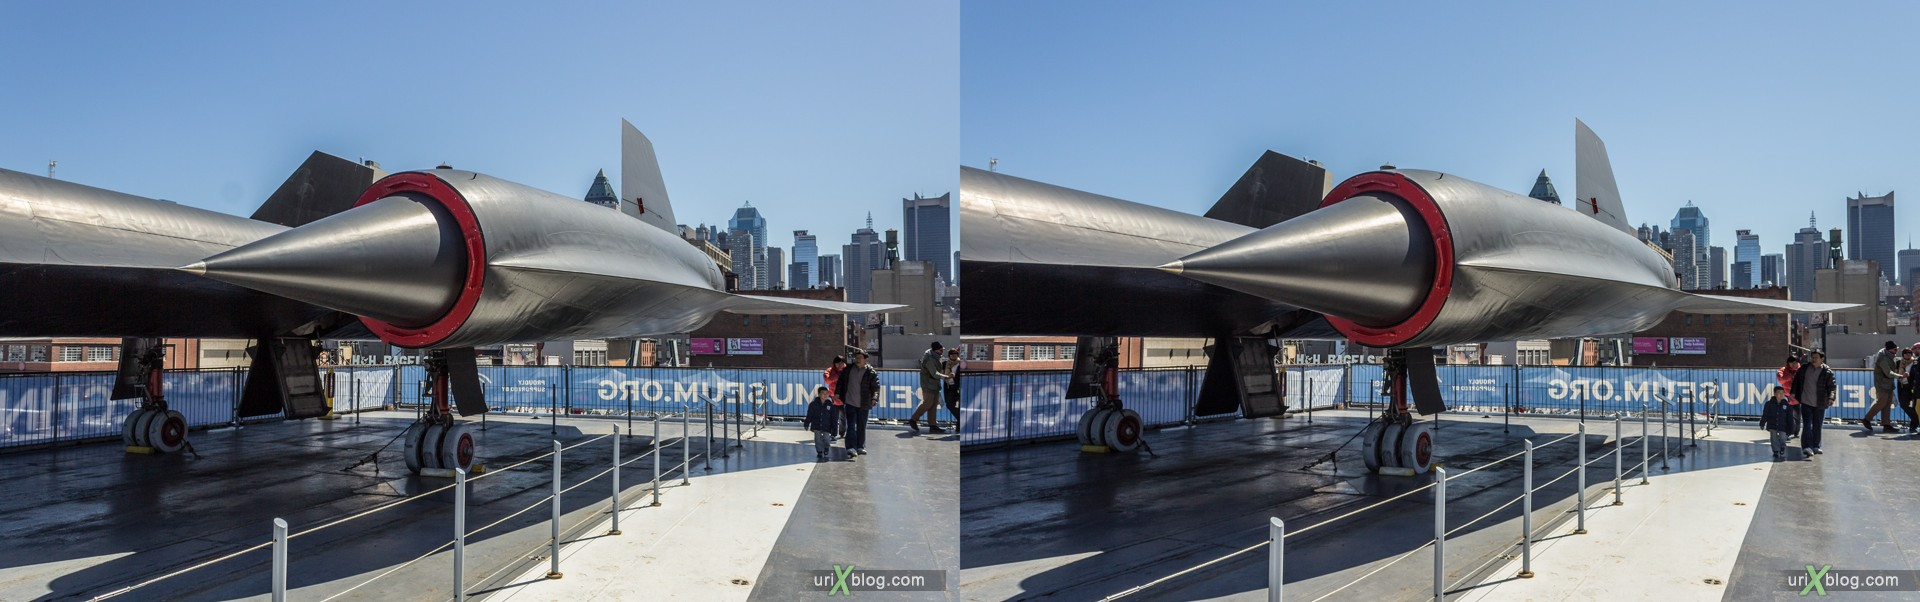 2013, USA, NYC, New York, aircraft carrier Intrepid museum, Lockheed A-12 Blackbird, sea, air, space, ship, submarine, aircraft, airplane, helicopter, military, 3D, stereo pair, cross-eyed, crossview, cross view stereo pair, stereoscopic